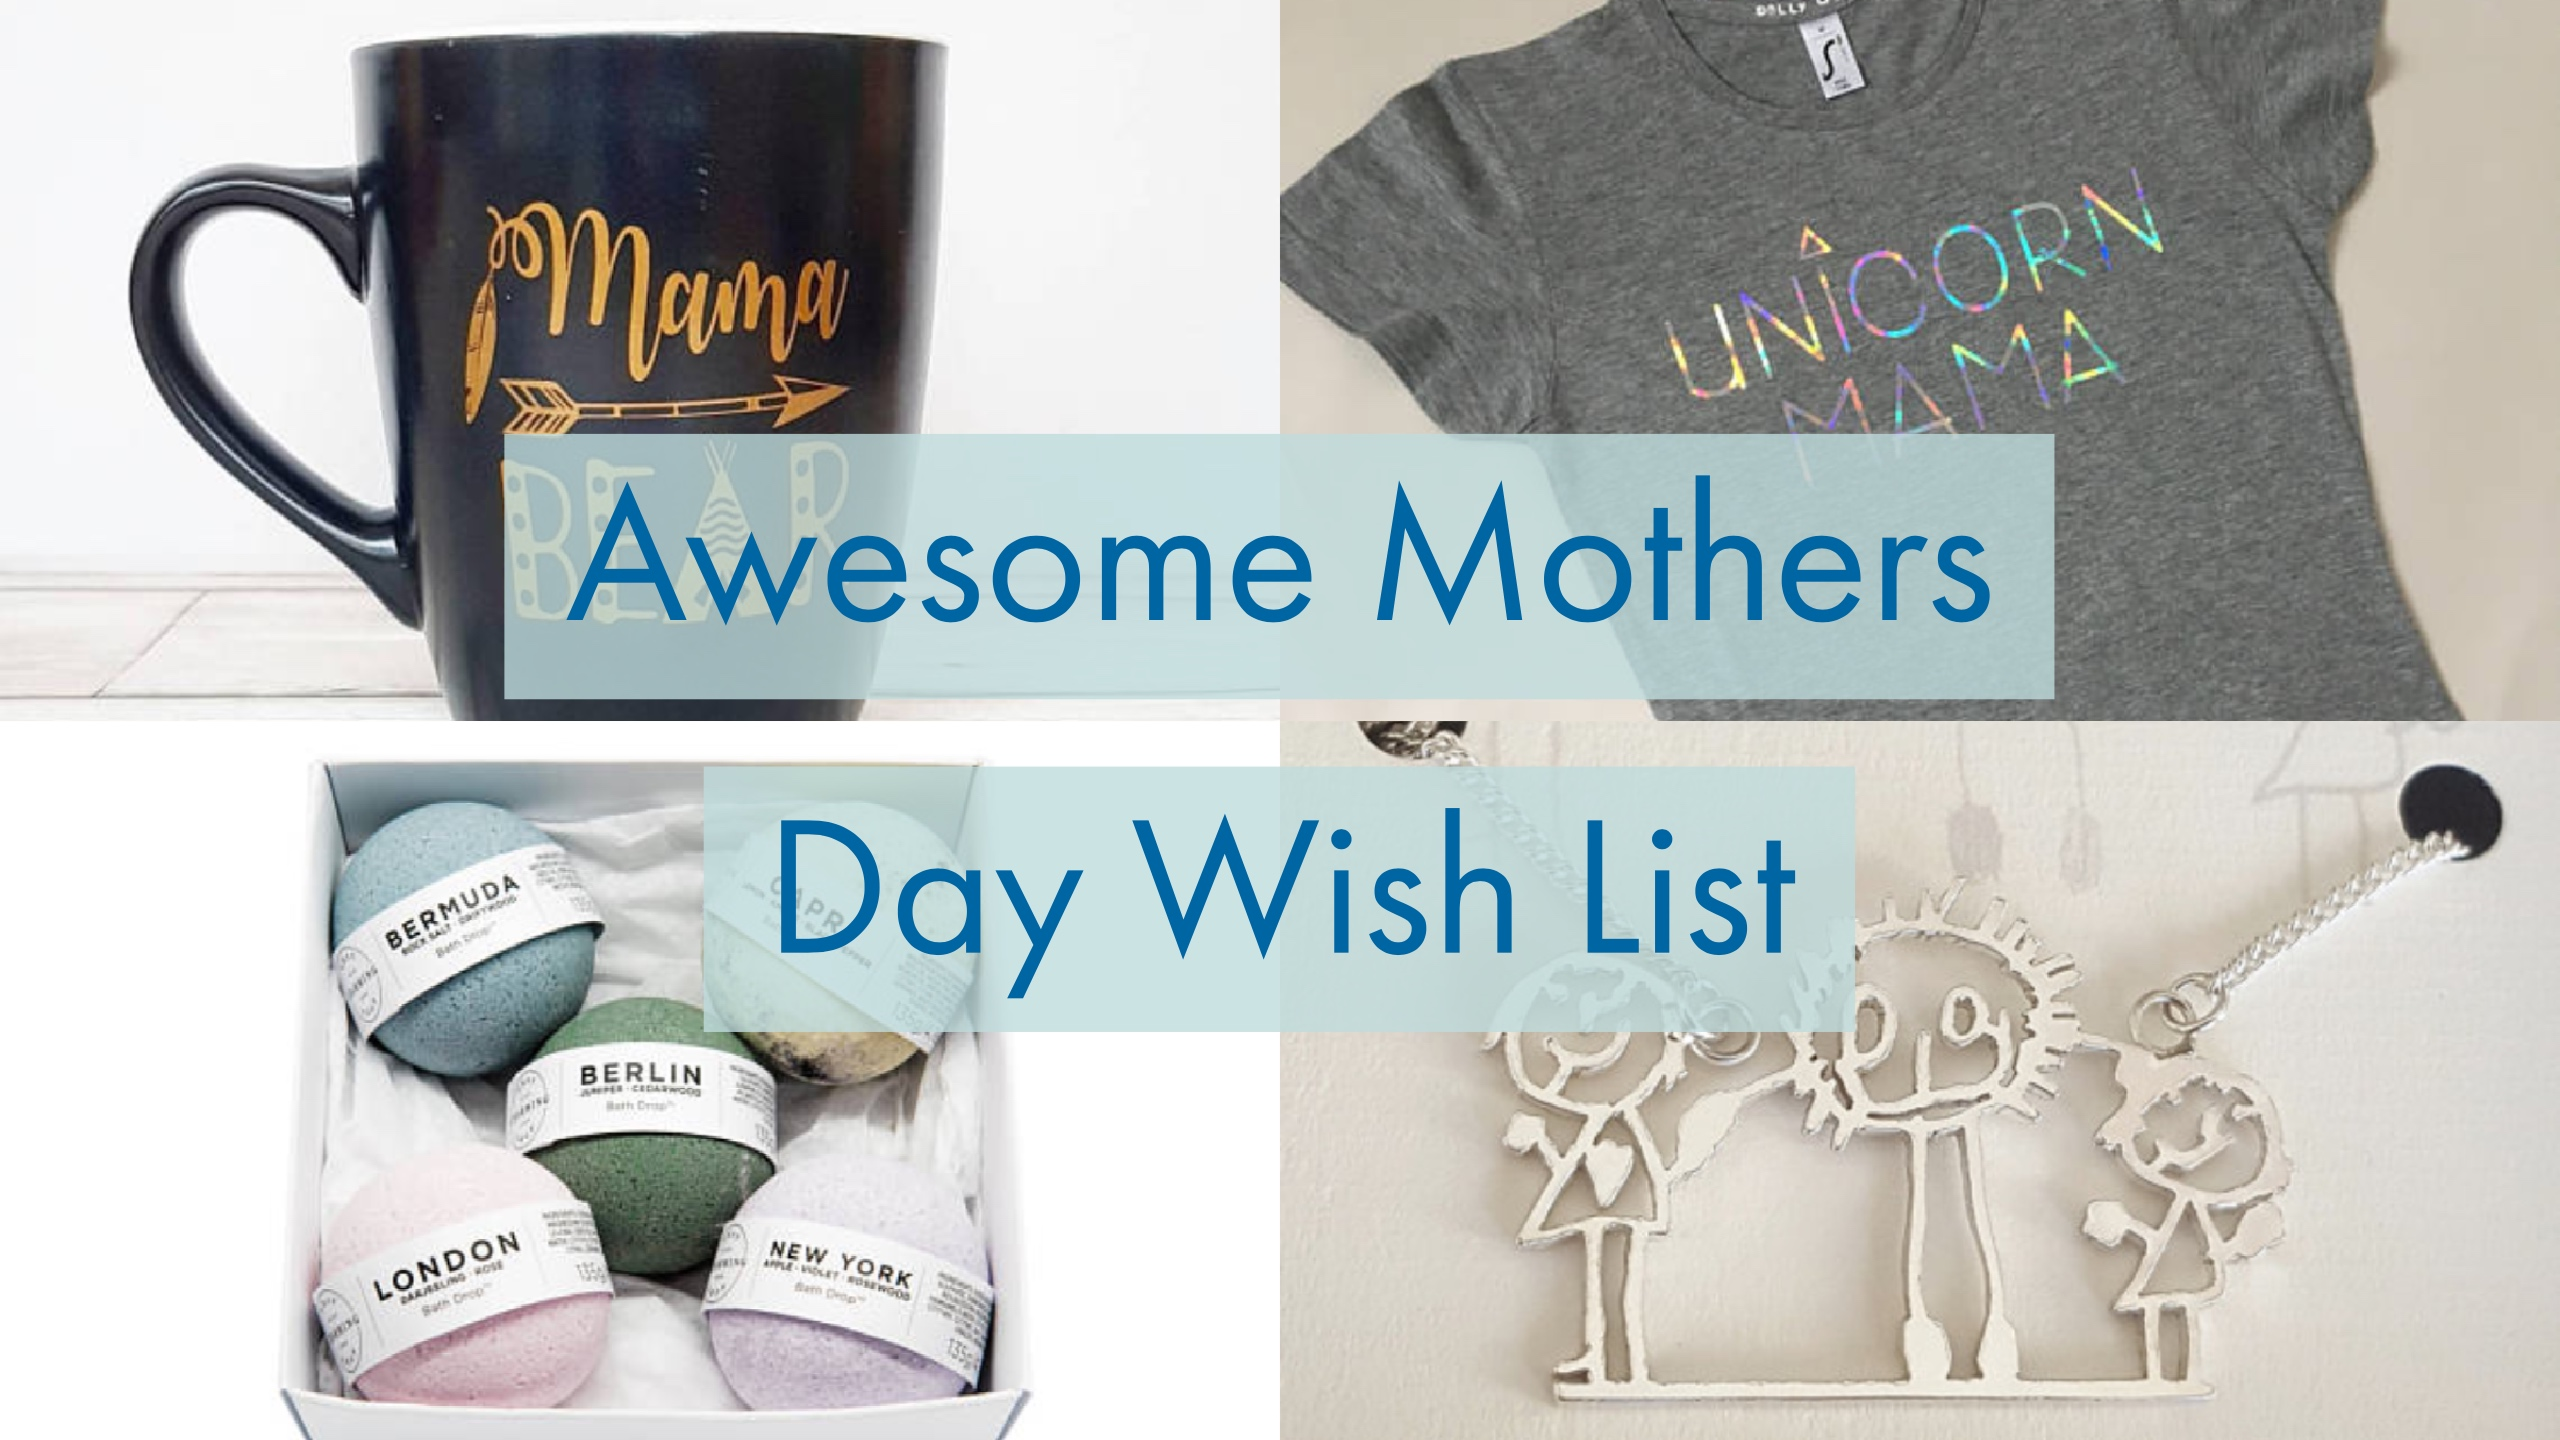 Mothers Day Gift Ideas From Etsy Awesome Mothers Day Gifts